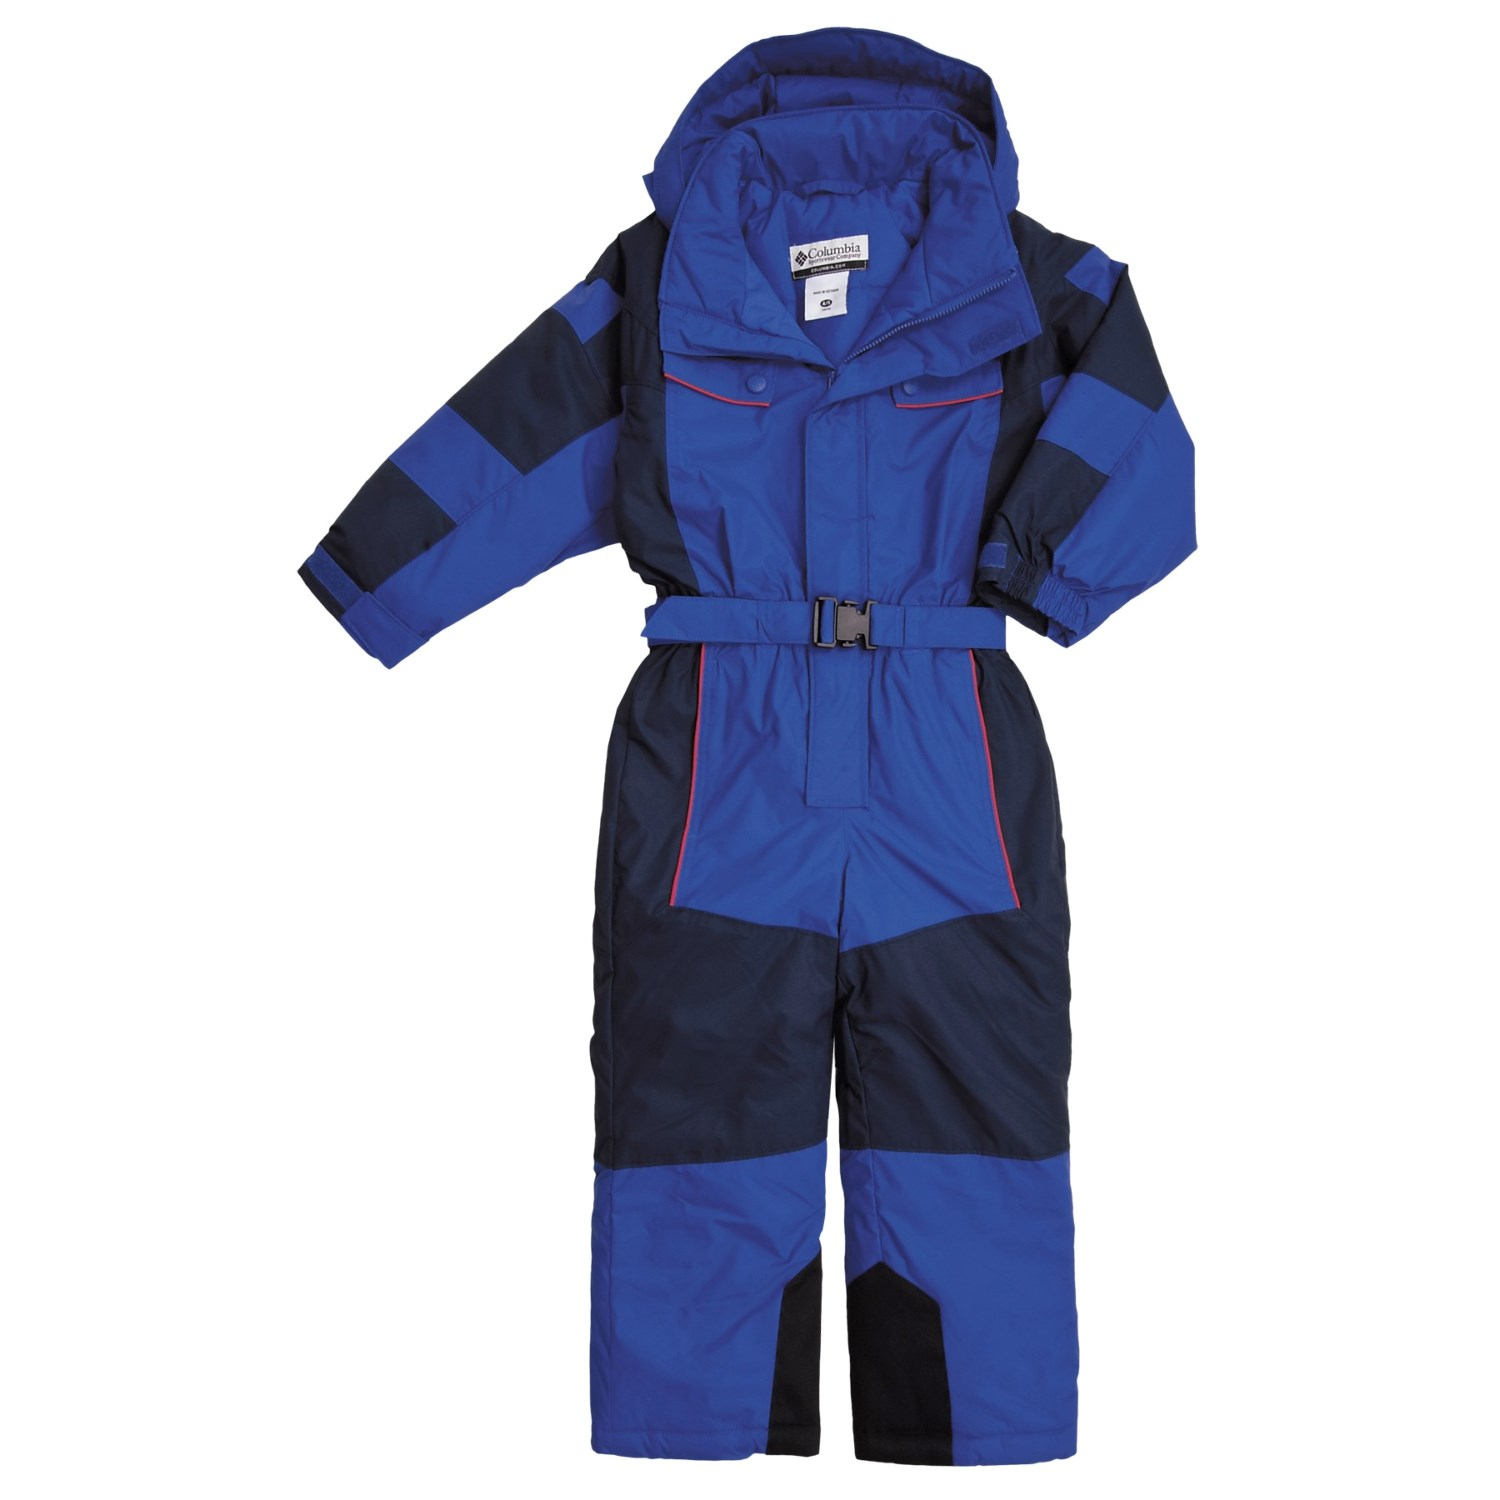 Kids' snow boots Men's ski and snowboard jackets Women's ski and snowboard jackets Snow suit: £30, Boden. The vibrant flower design makes this suit stand out, but there's also a more unisex.